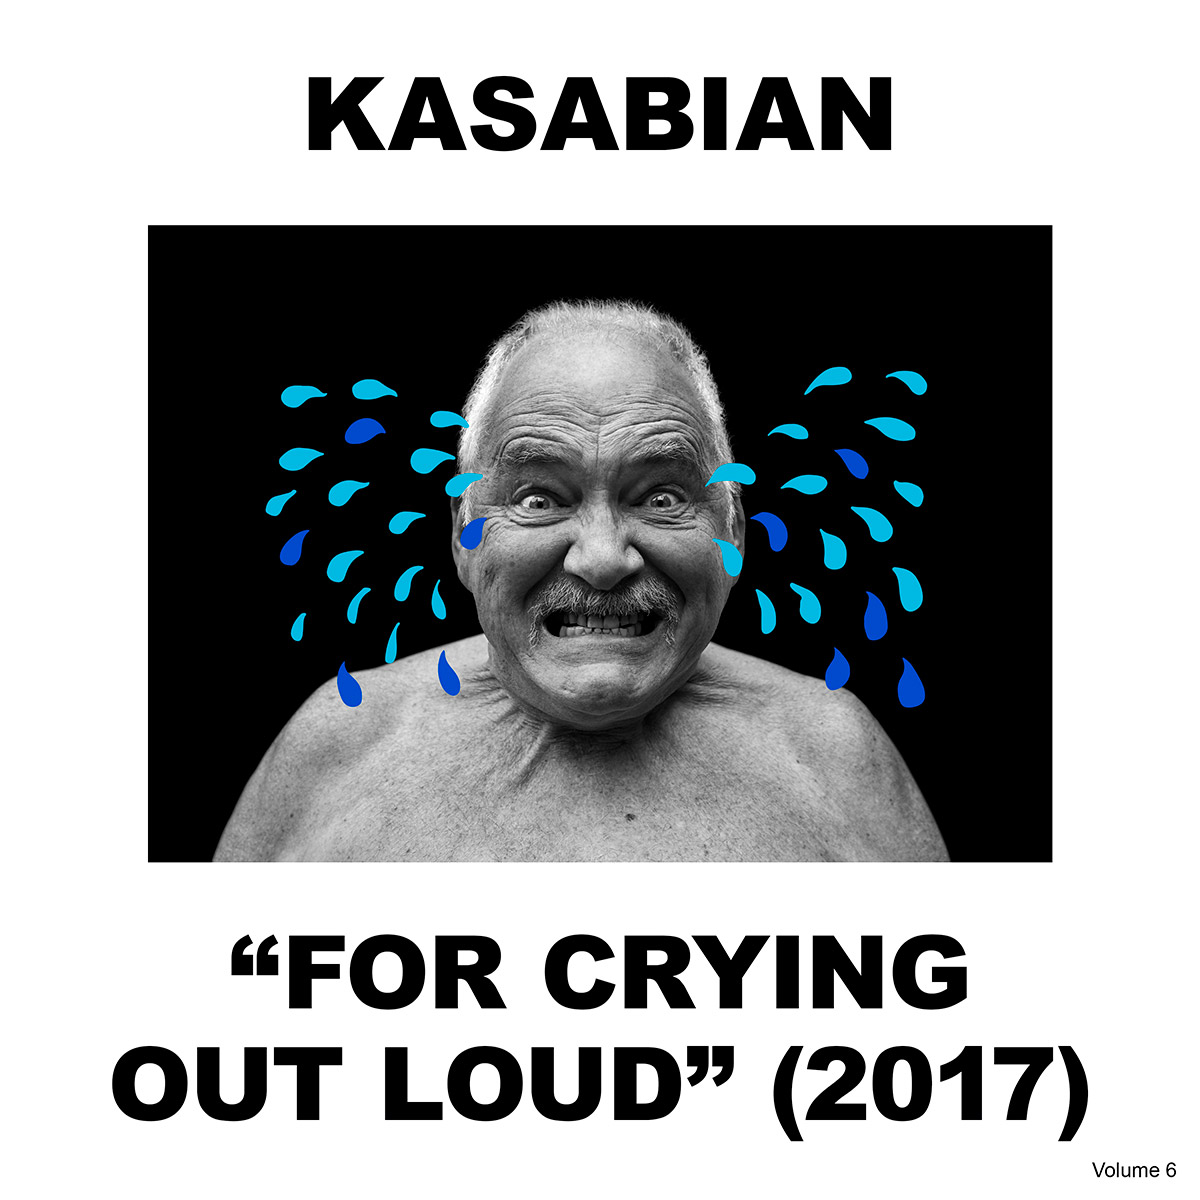 Kasabian - For crying and love